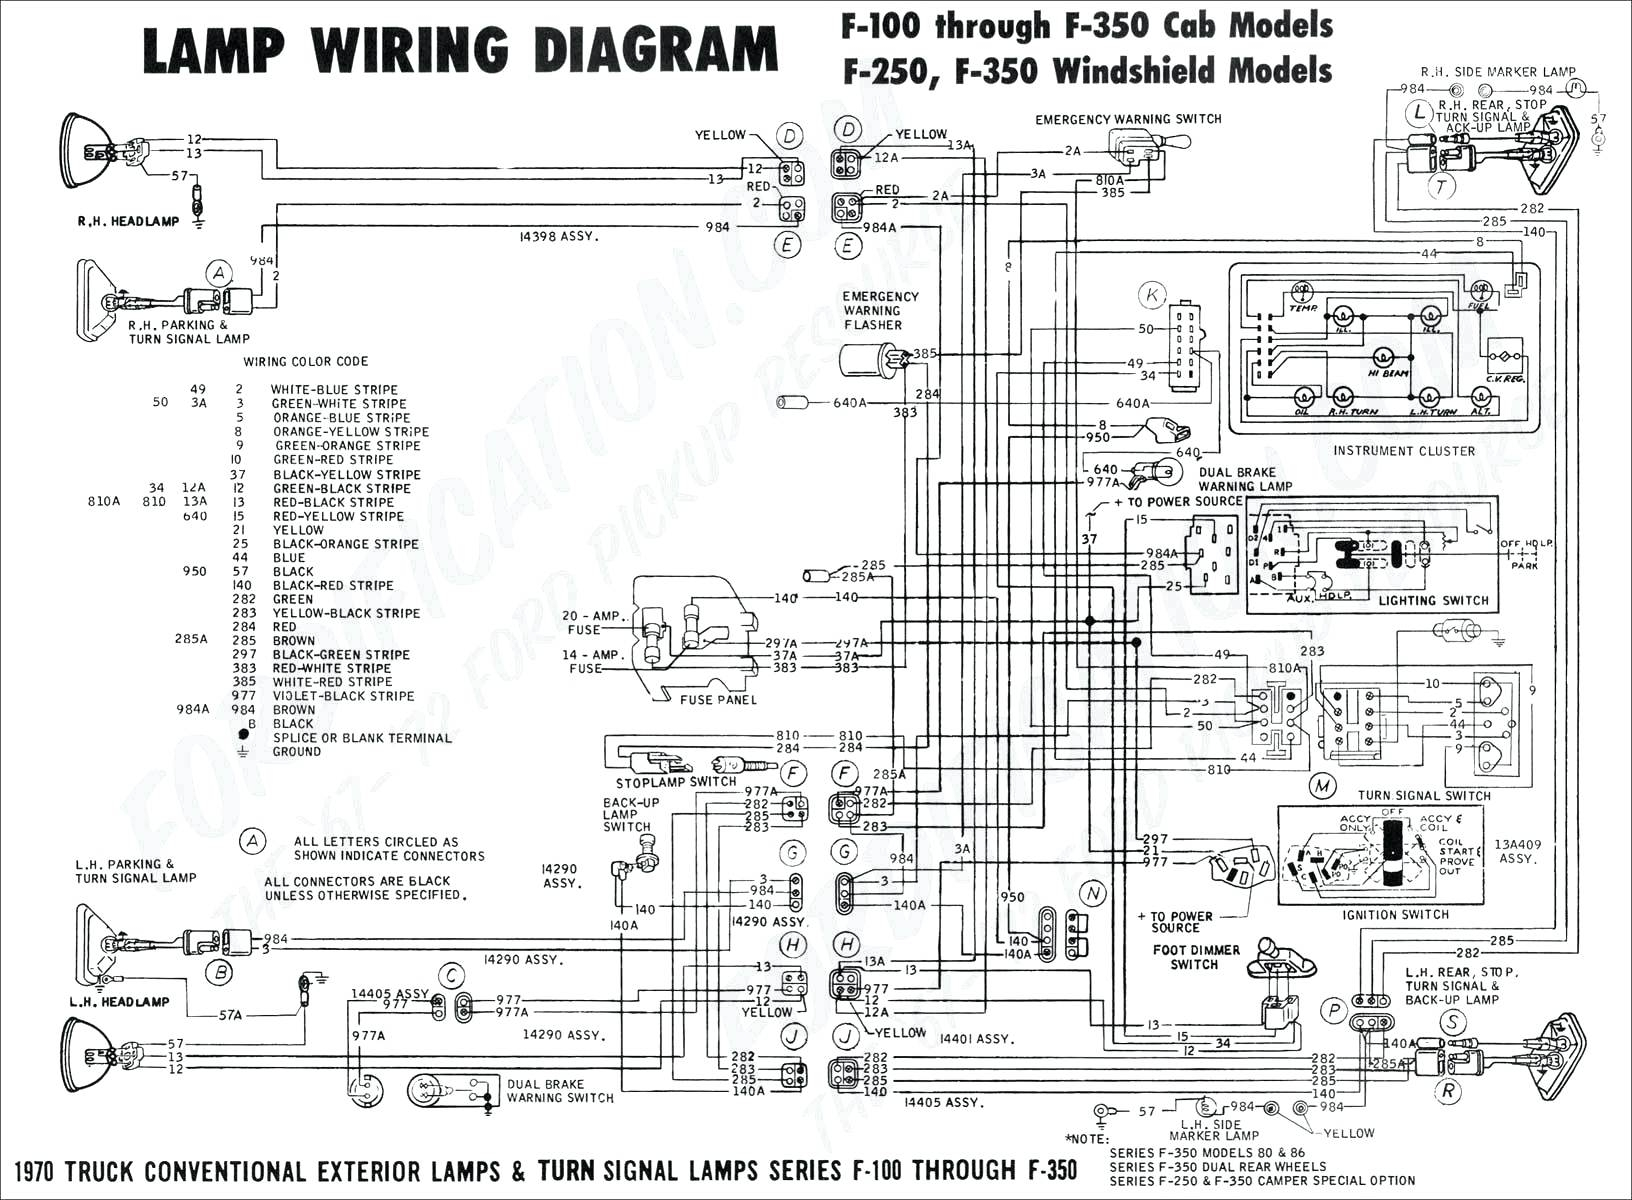 Eec Iv Wiring Diagram 4 9 | Wiring Diagram